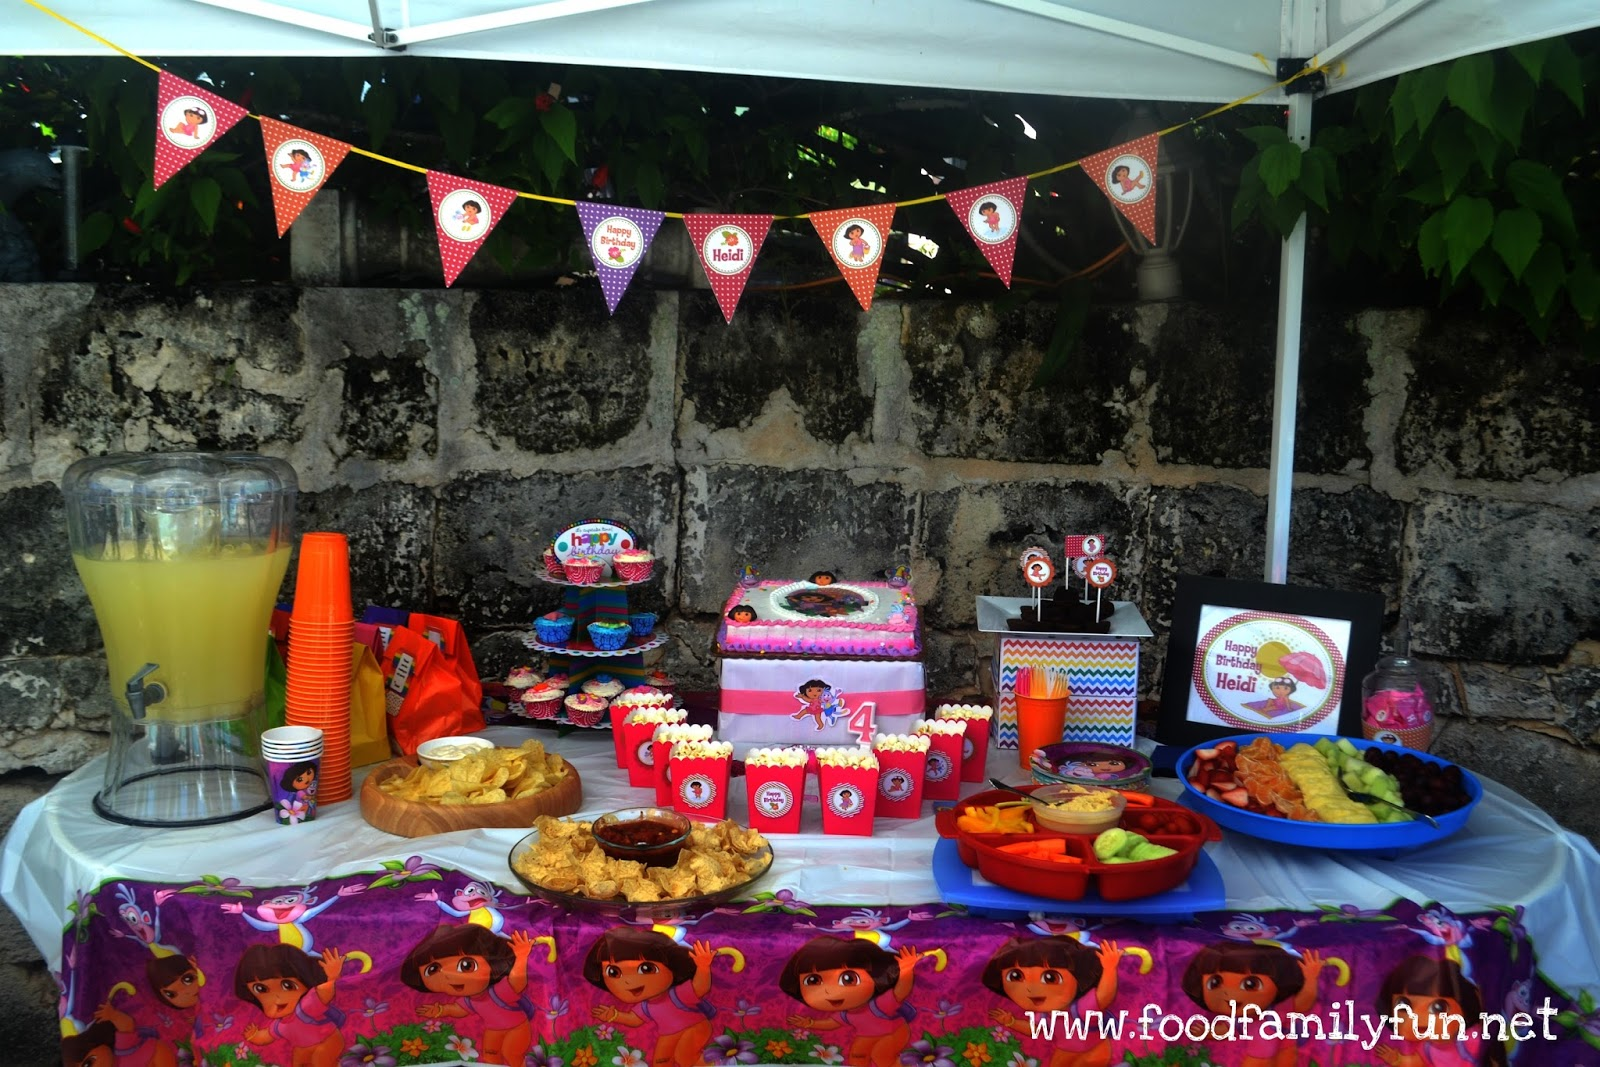 Food family fun dora the explorer birthday party on a for Fun bday ideas for adults